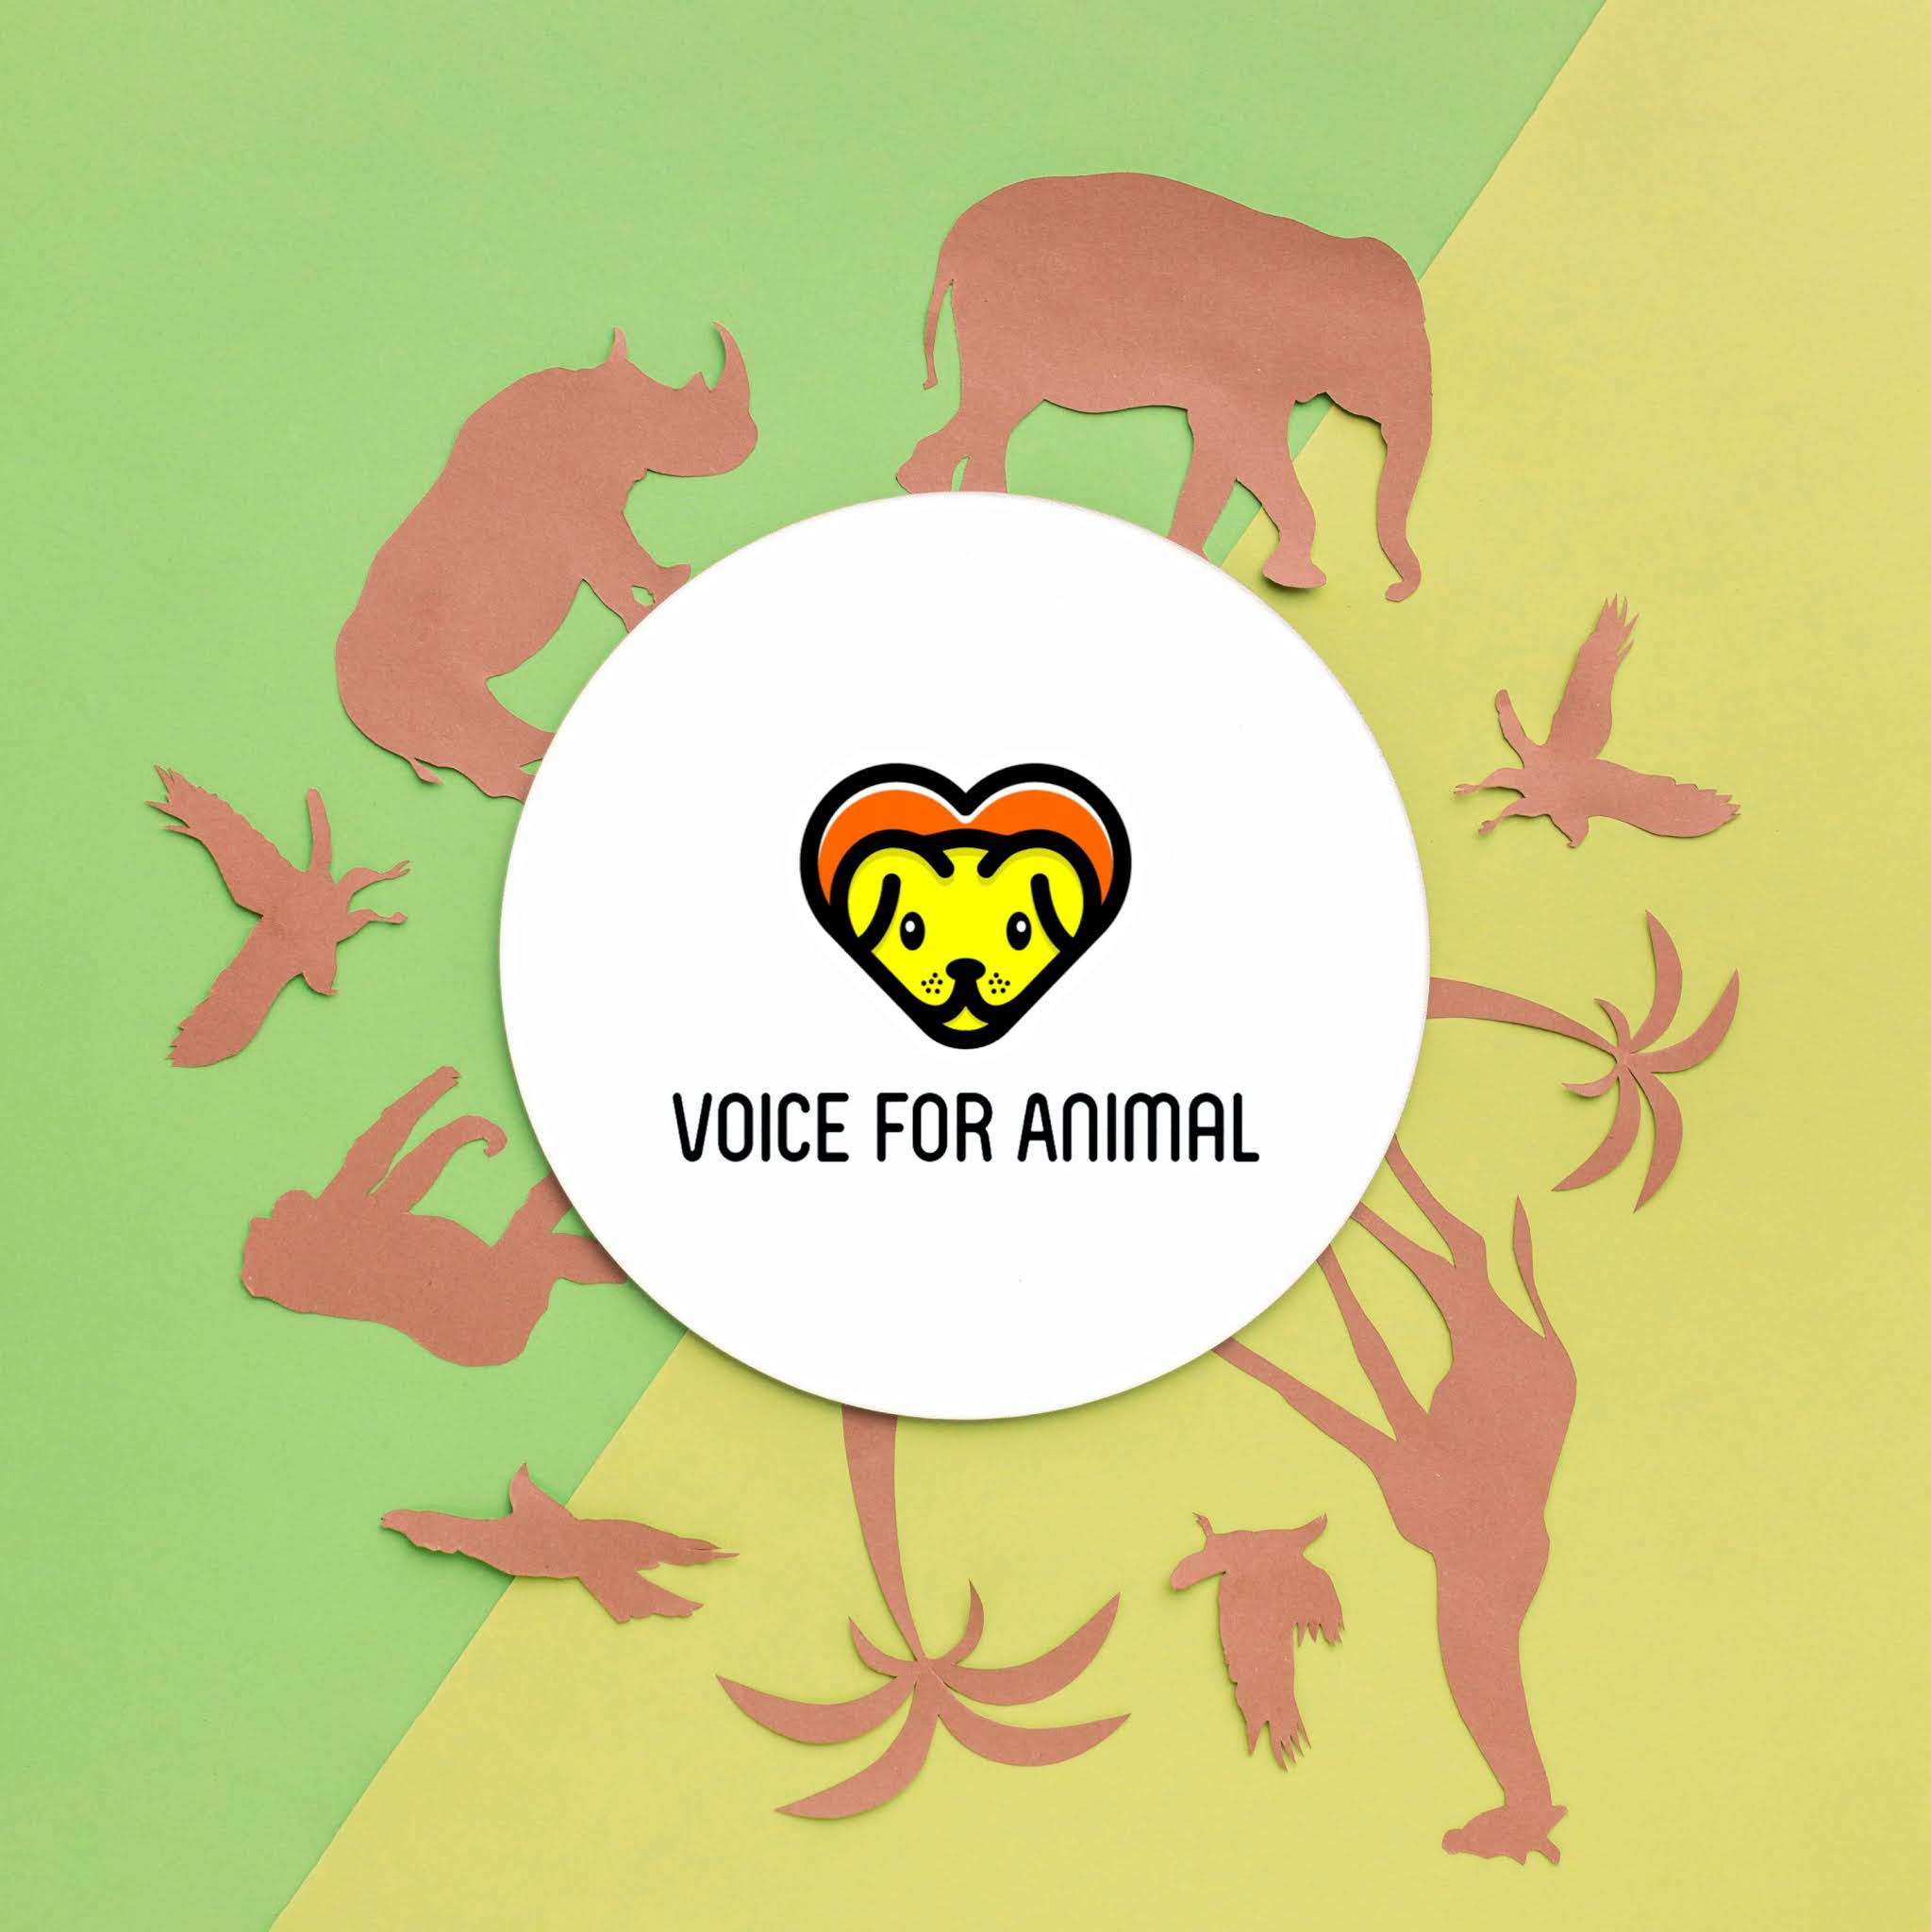 Animal rights, voice for animals